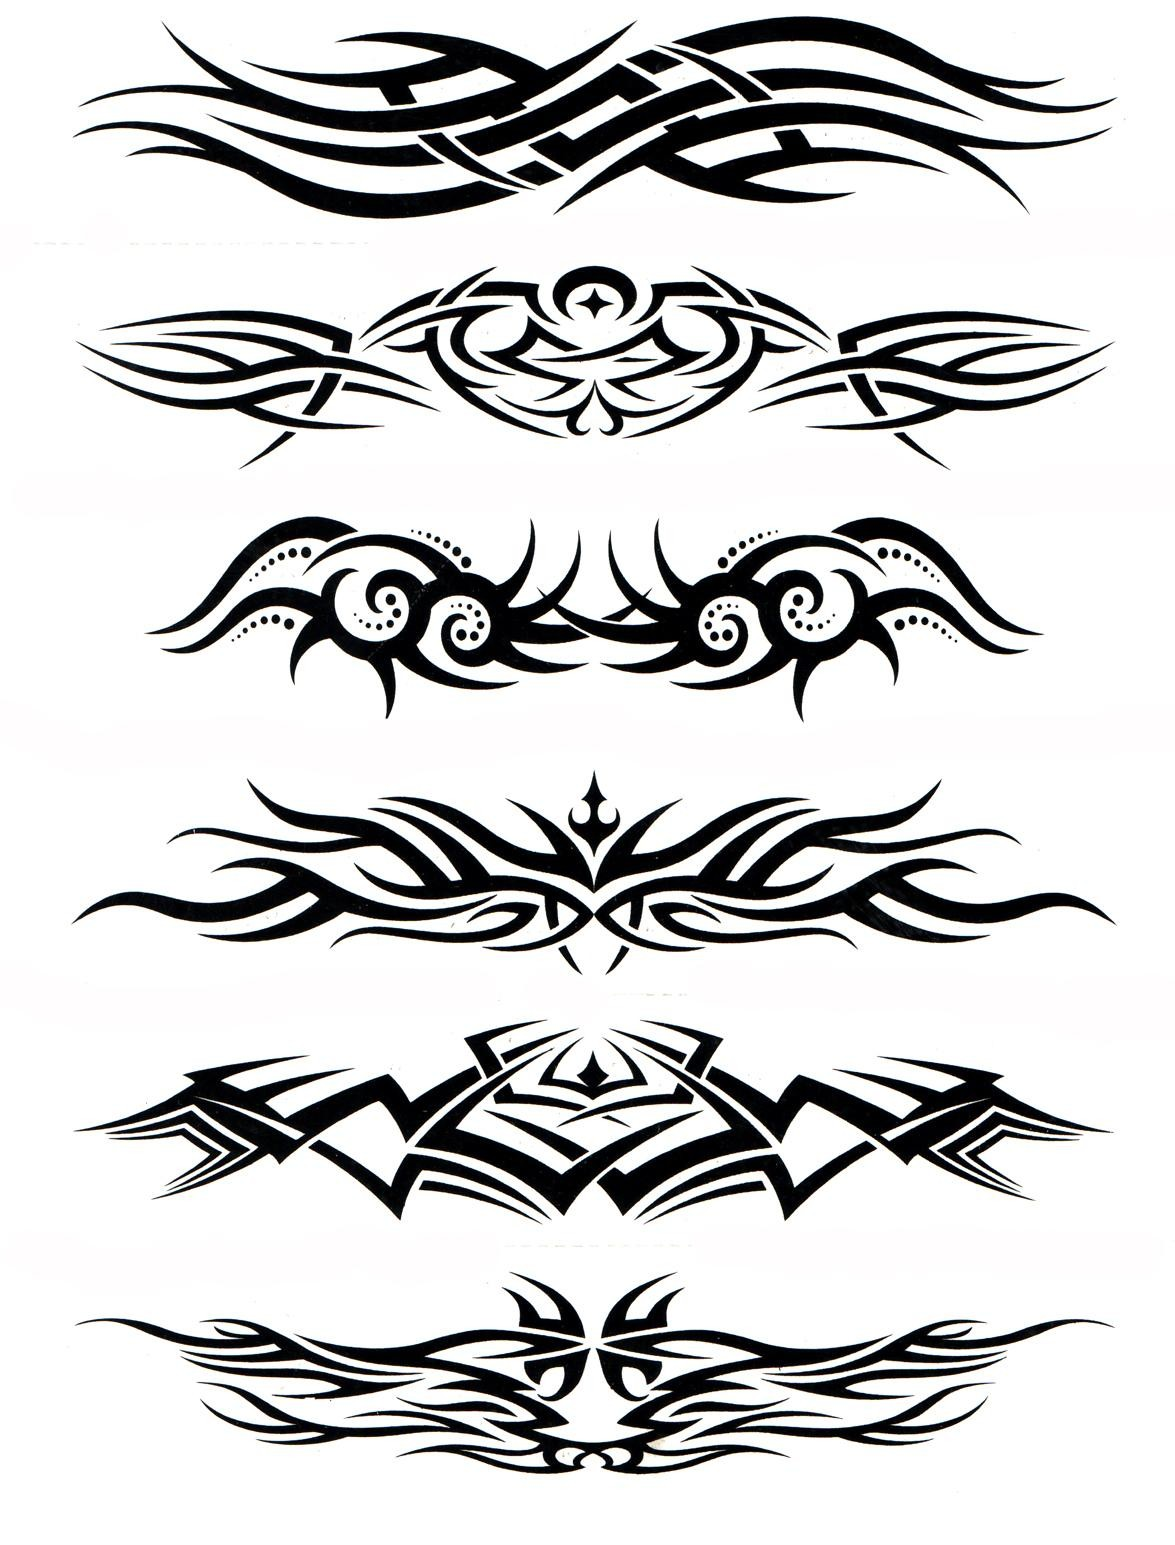 Water Transfer Temporary Tattoos (5 in 1) - 2